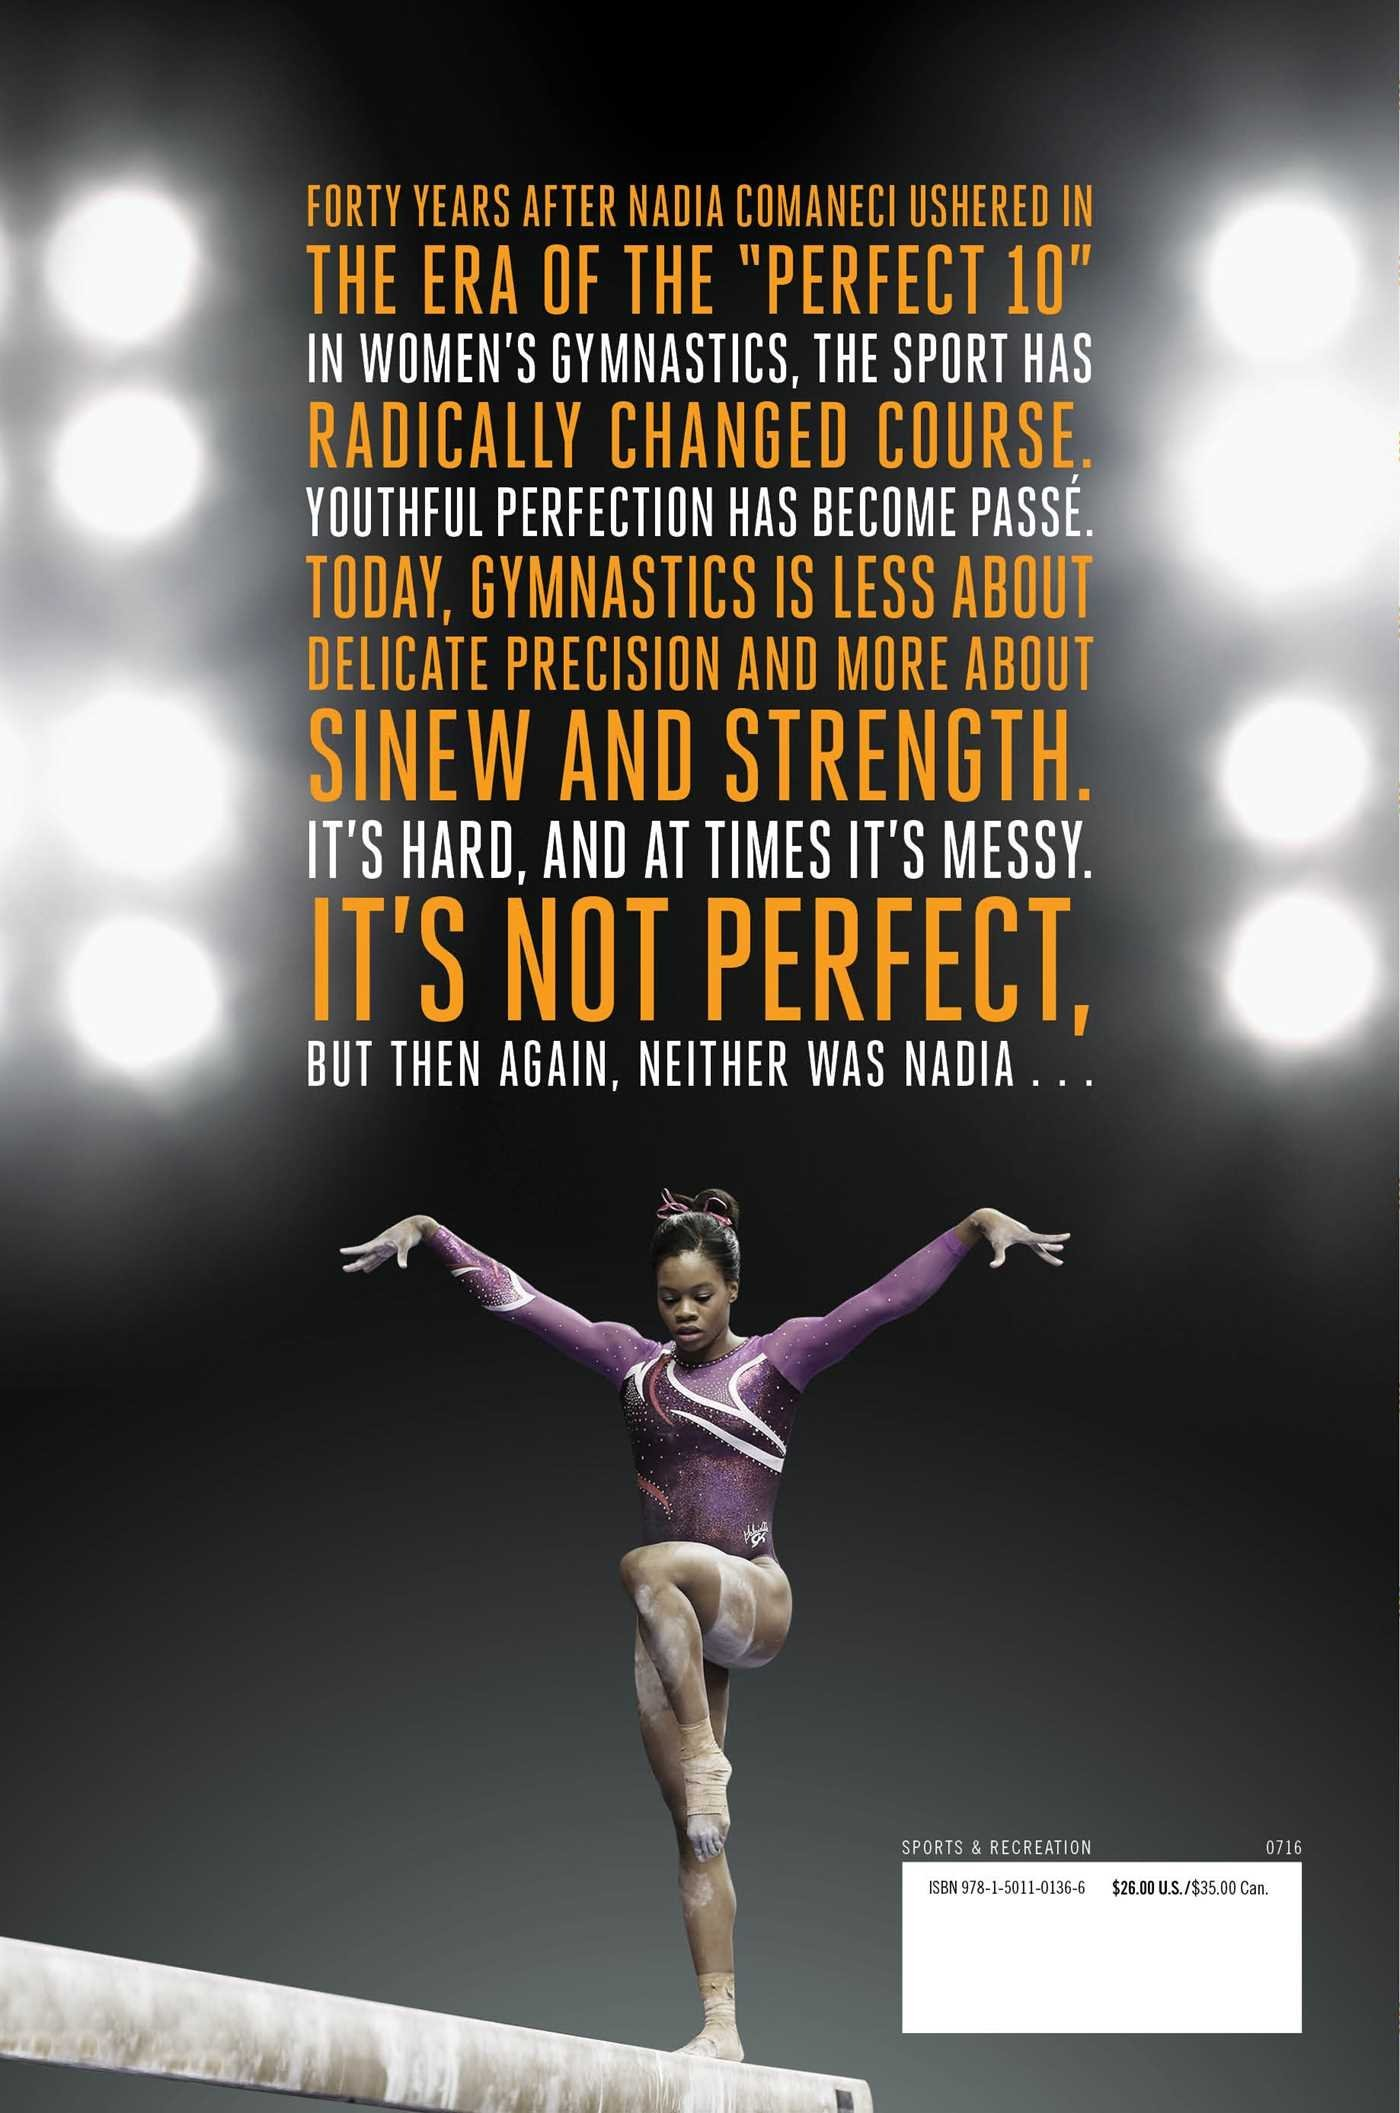 The End Of The Perfect 10: The Making And Breaking Of Gymnastics' Top Score  _from Nadia To Now: Dvora Meyers: 9781501101366: Amazon: Books